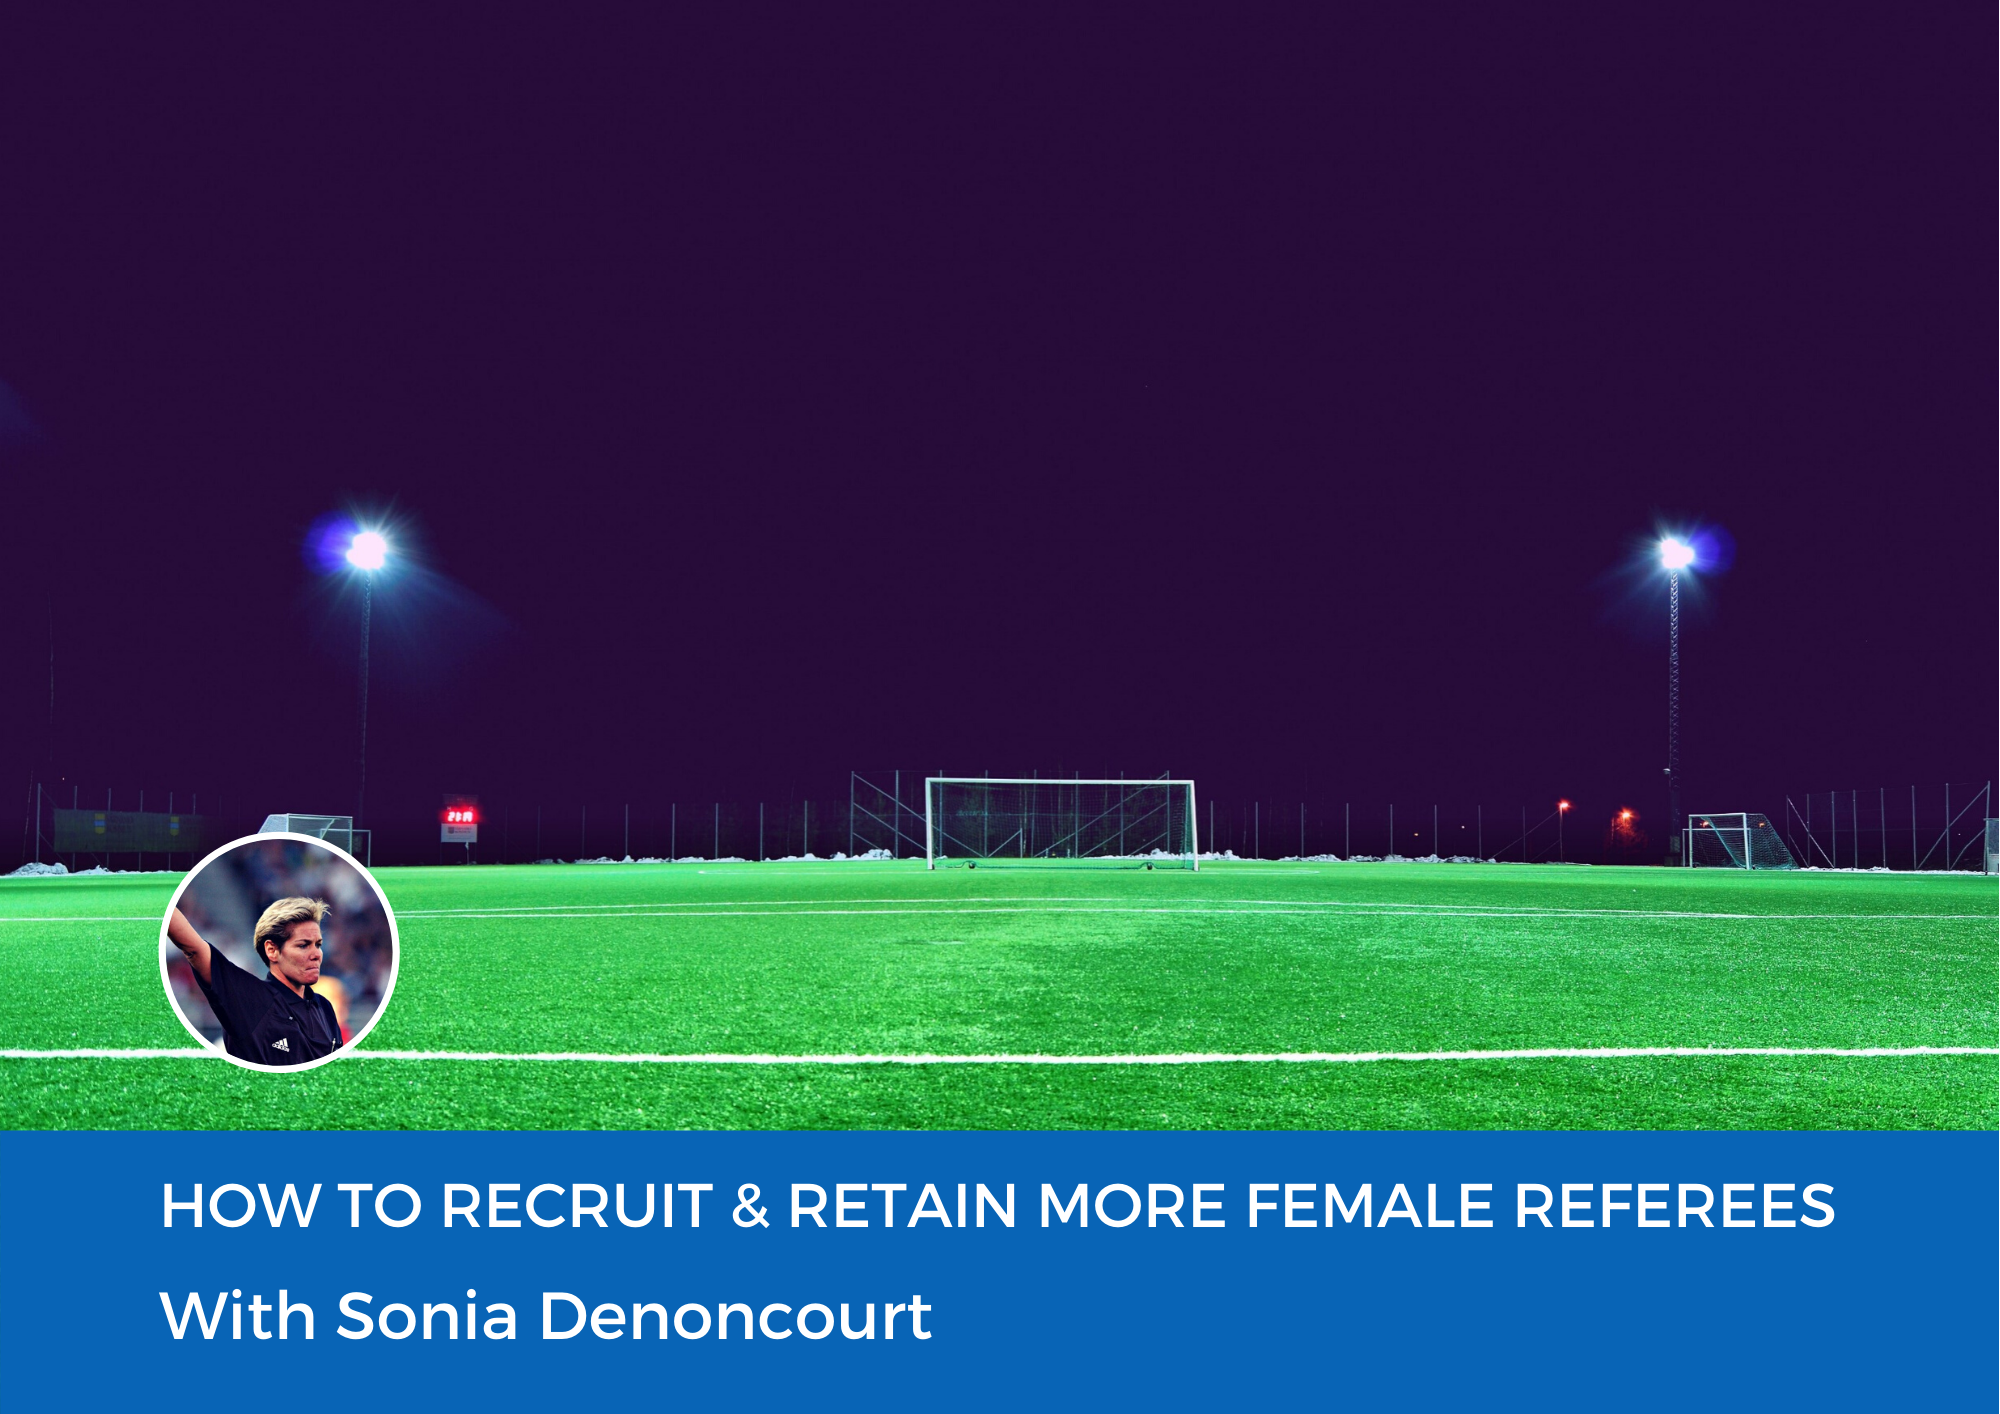 How to Recruit and Retain more Female Referees